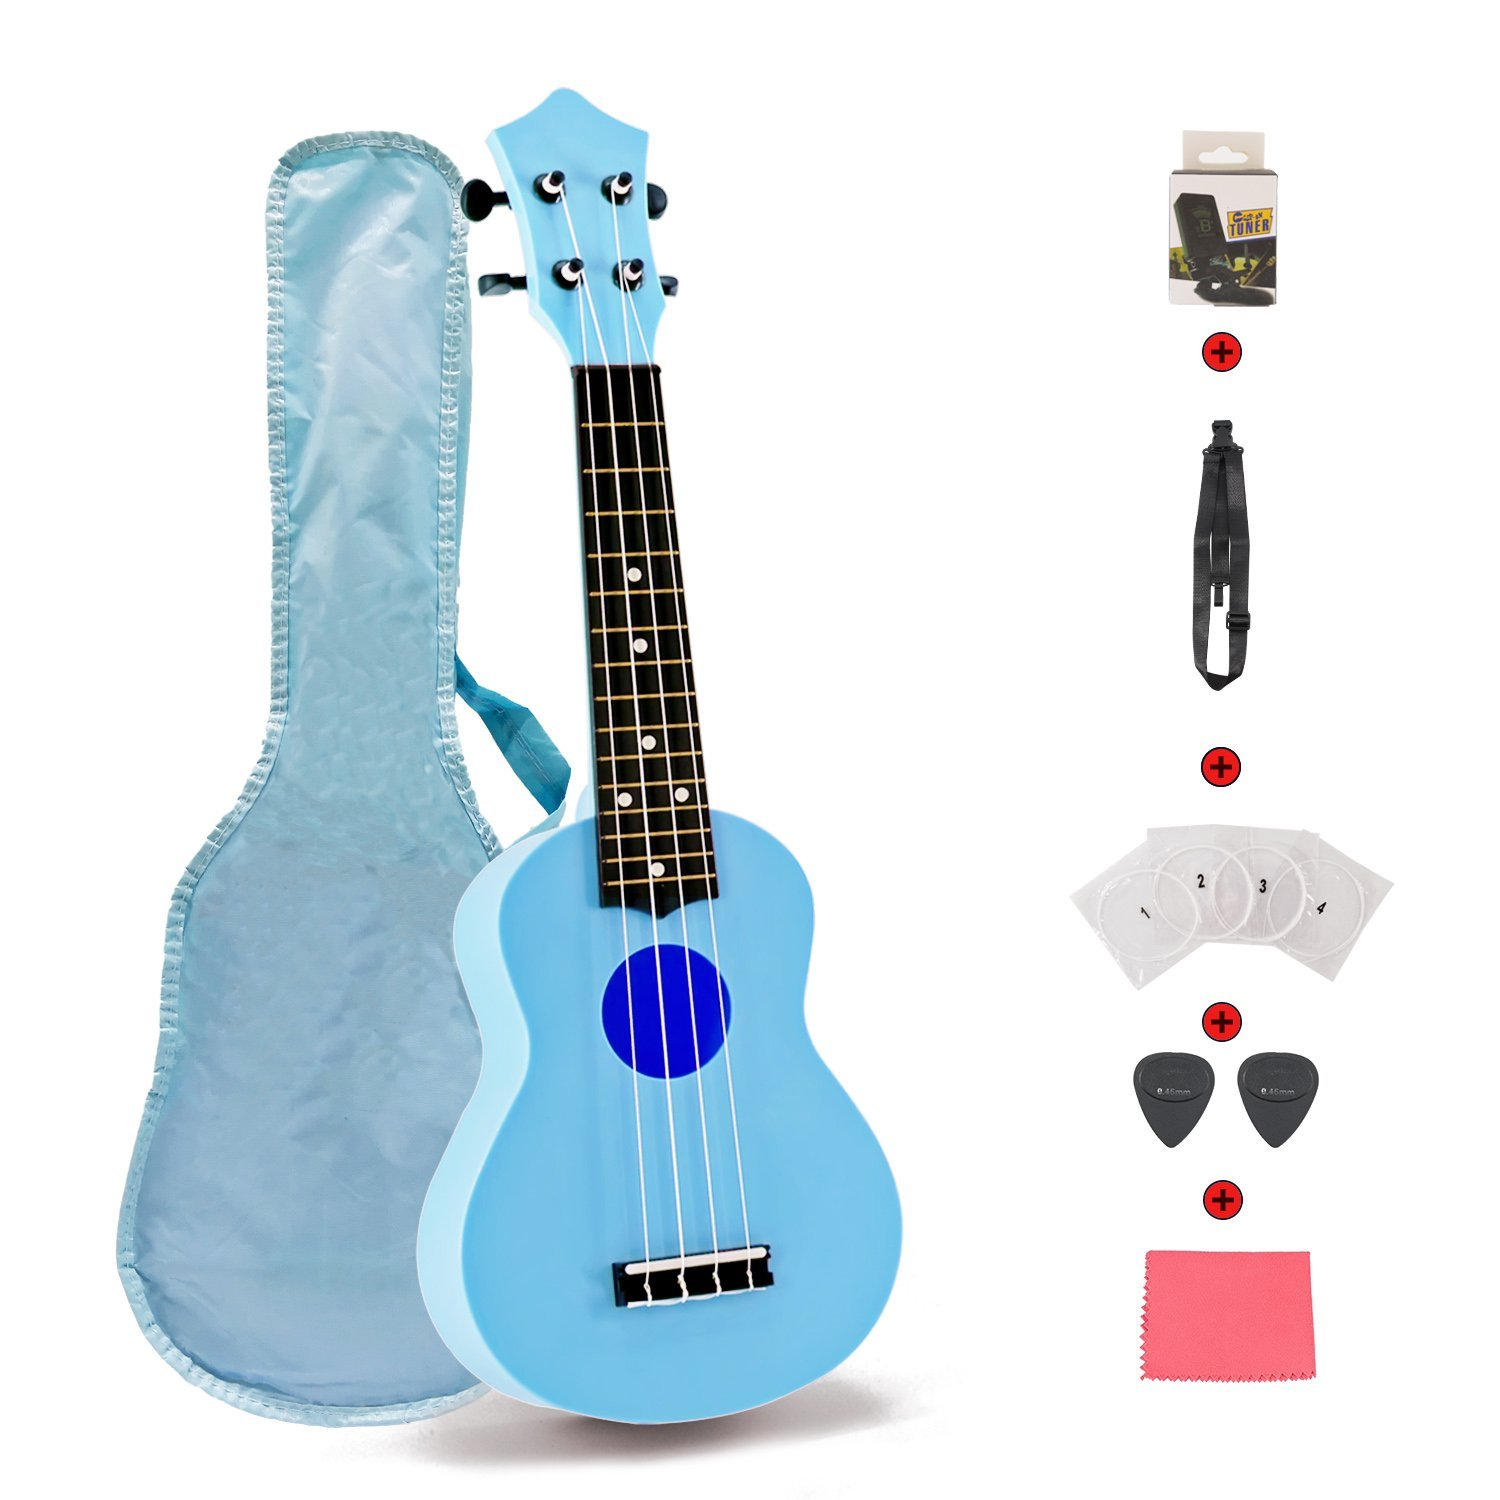 Toy Ukulele 21 inch Plastic Guitar with Strap Nylon String Tuner Guitar Picks Ukulele Strings Bag Cleaning Cloth for Toddler Kids Children Ukulele Learner Beginner Gift Macarons Color Blue